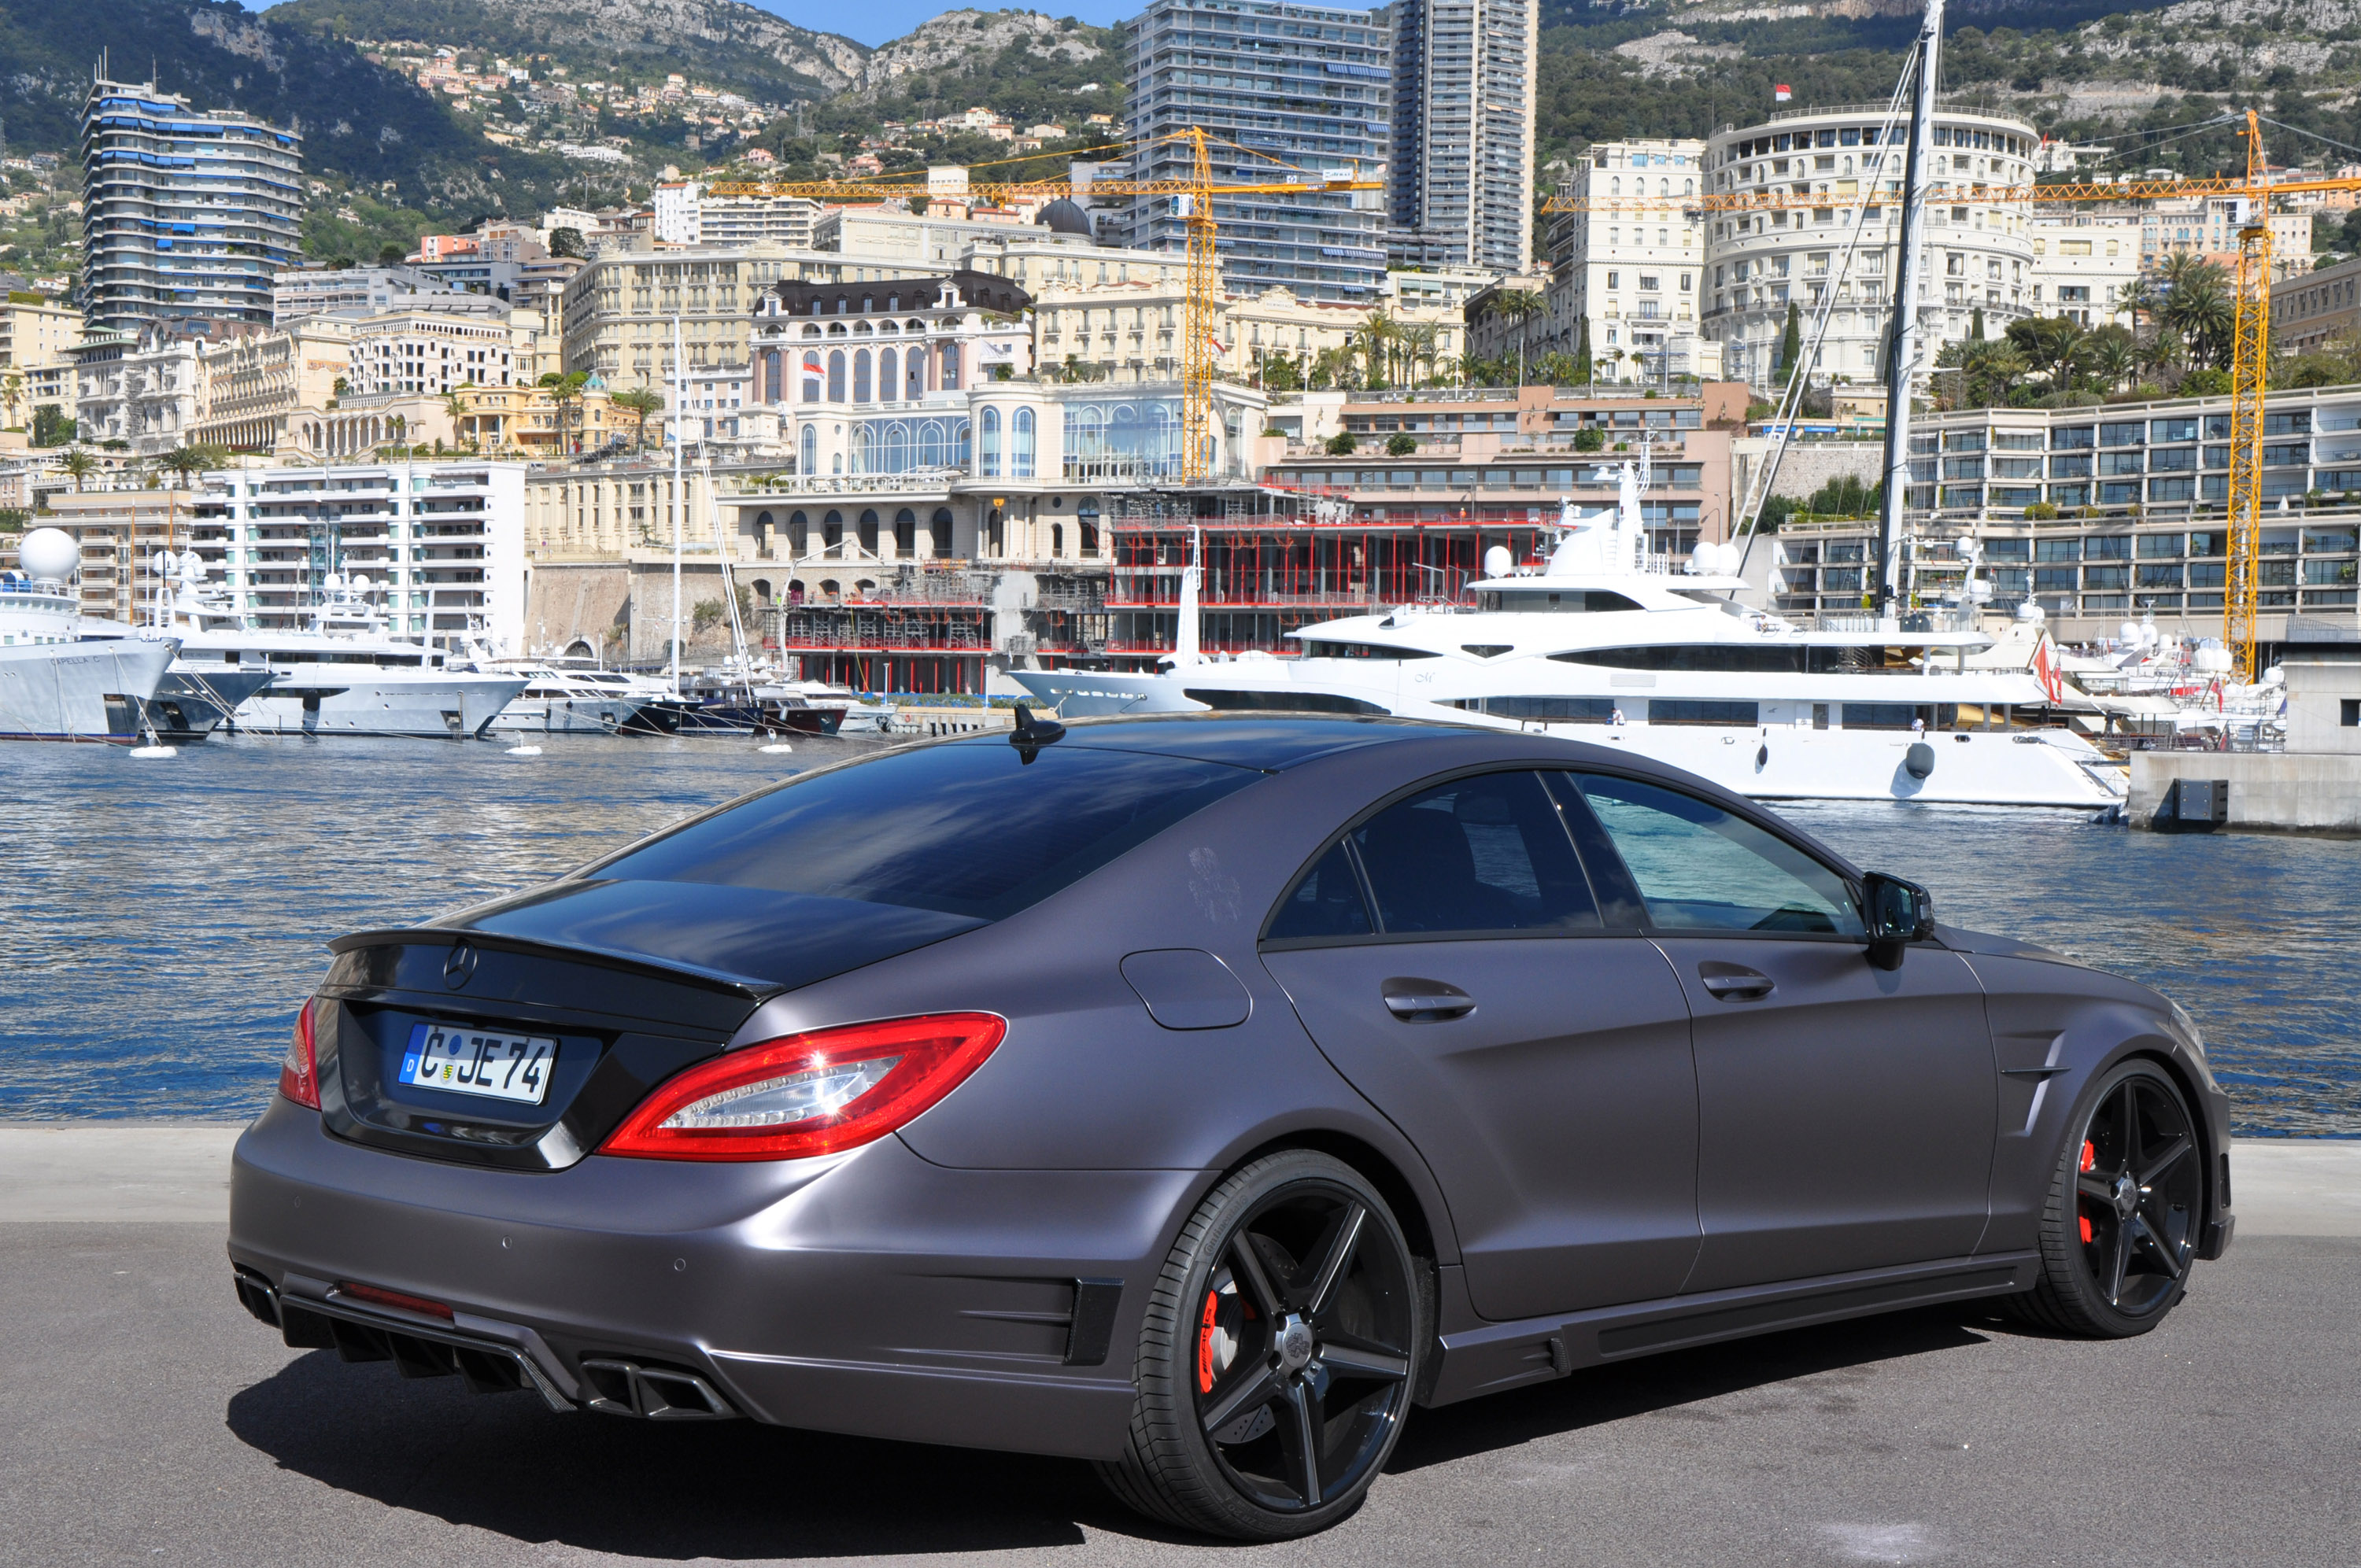 Launched Mercedes Benz Cls Shooting Brake furthermore 35945 Mercedes Benz Cls 63 Amg 2012 Fixed besides 519504 Beautiful  bo You Don T See Everyday Acute Performance X Concavo Wheels together with 283 Mercedes Benz Cls63 Amg 2012 Iphone4 besides Audi Vs Bmw Vs Mercedes. on 2012 mercedes benz cls63 amg